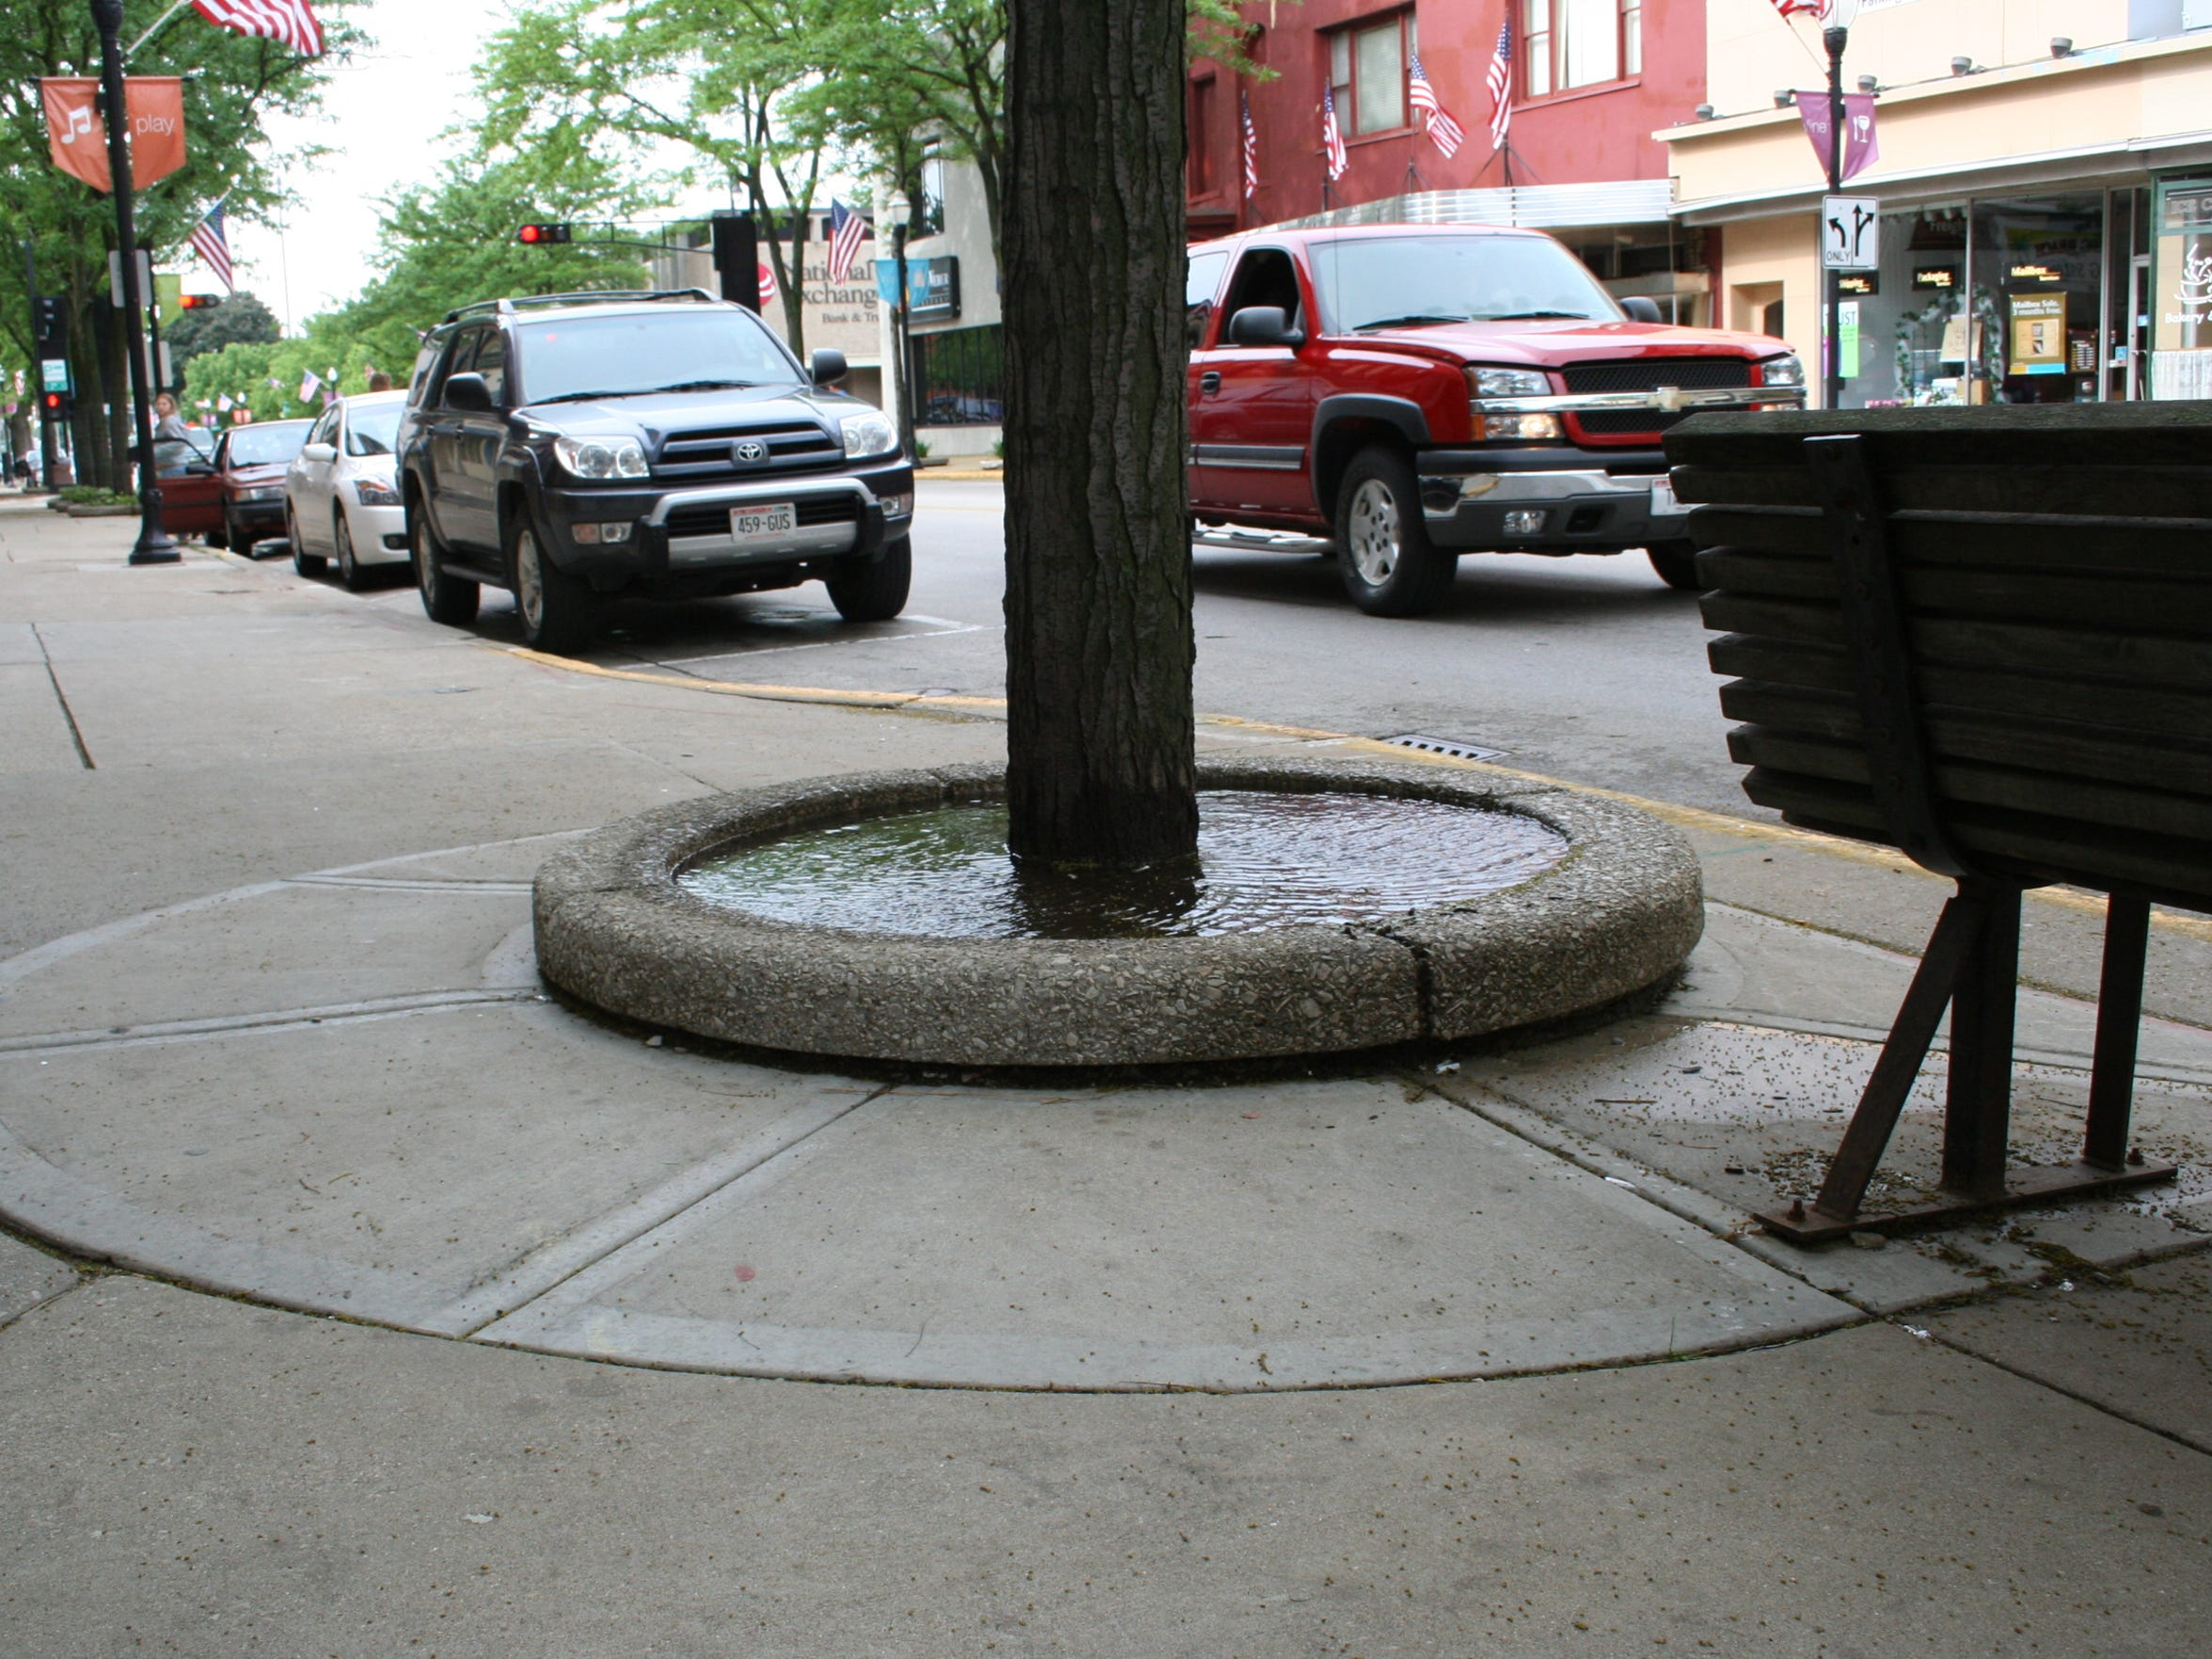 Water fills a planter on Main Street.